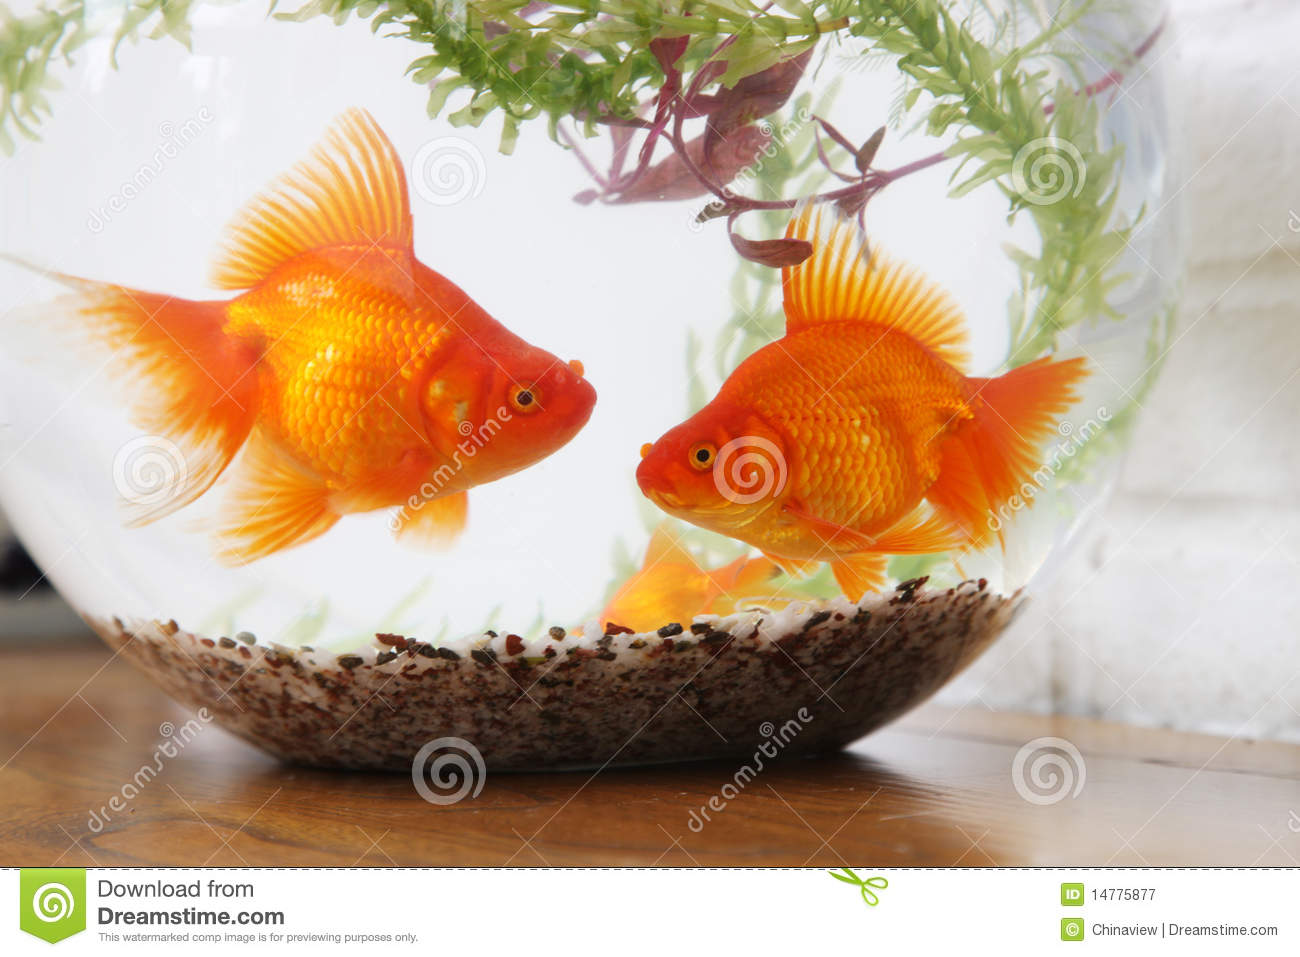 Fish in tank with goldfish - Goldfish In Fish Tank Close Up Royalty Free Stock Photography